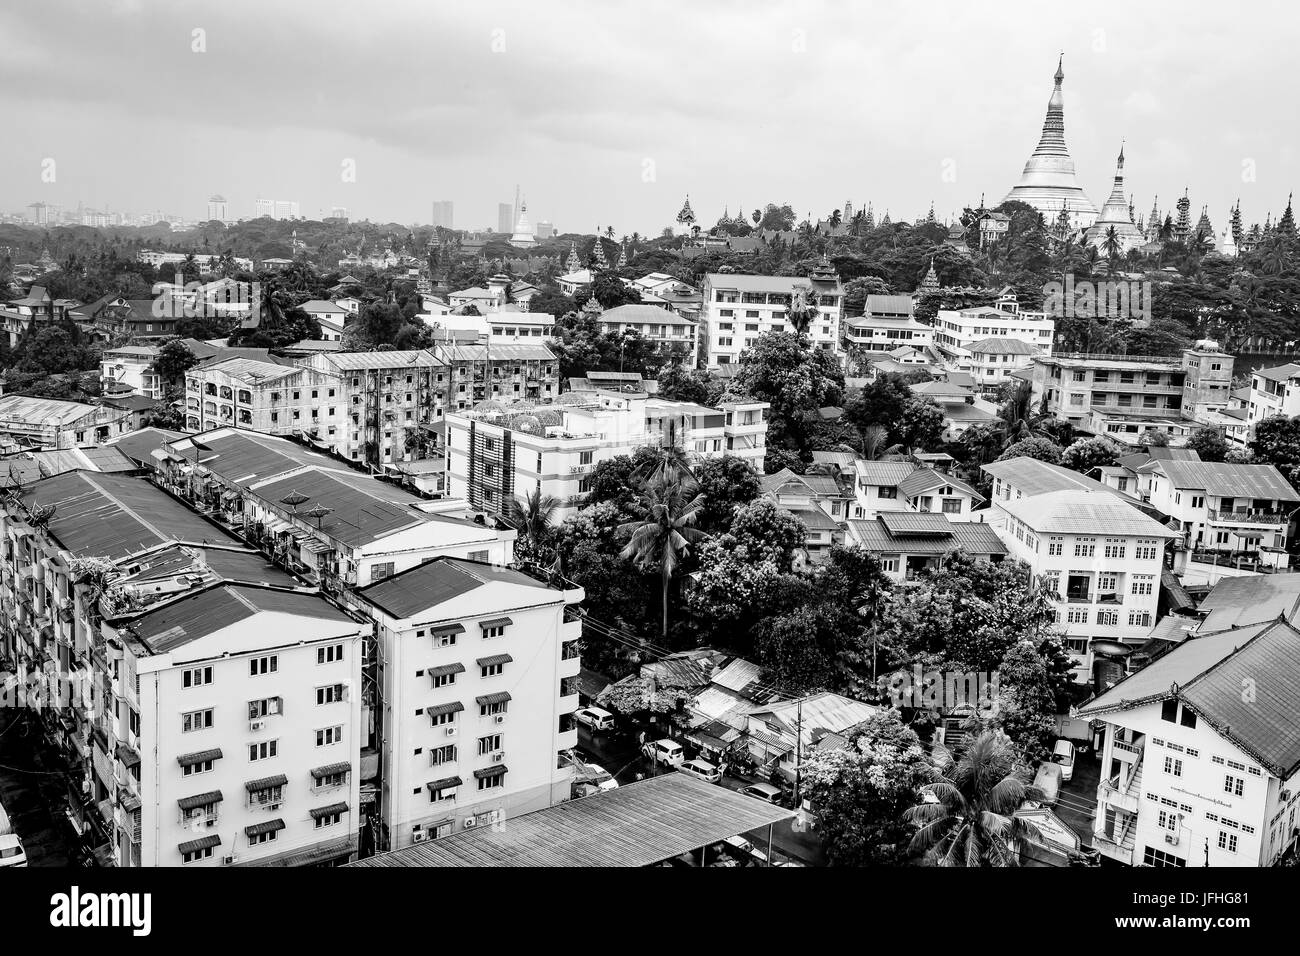 Shwedagon golden pagoda from the high in Yangon / Ragoon City Myanmar - travel photo - myanmar culture - Stock Image